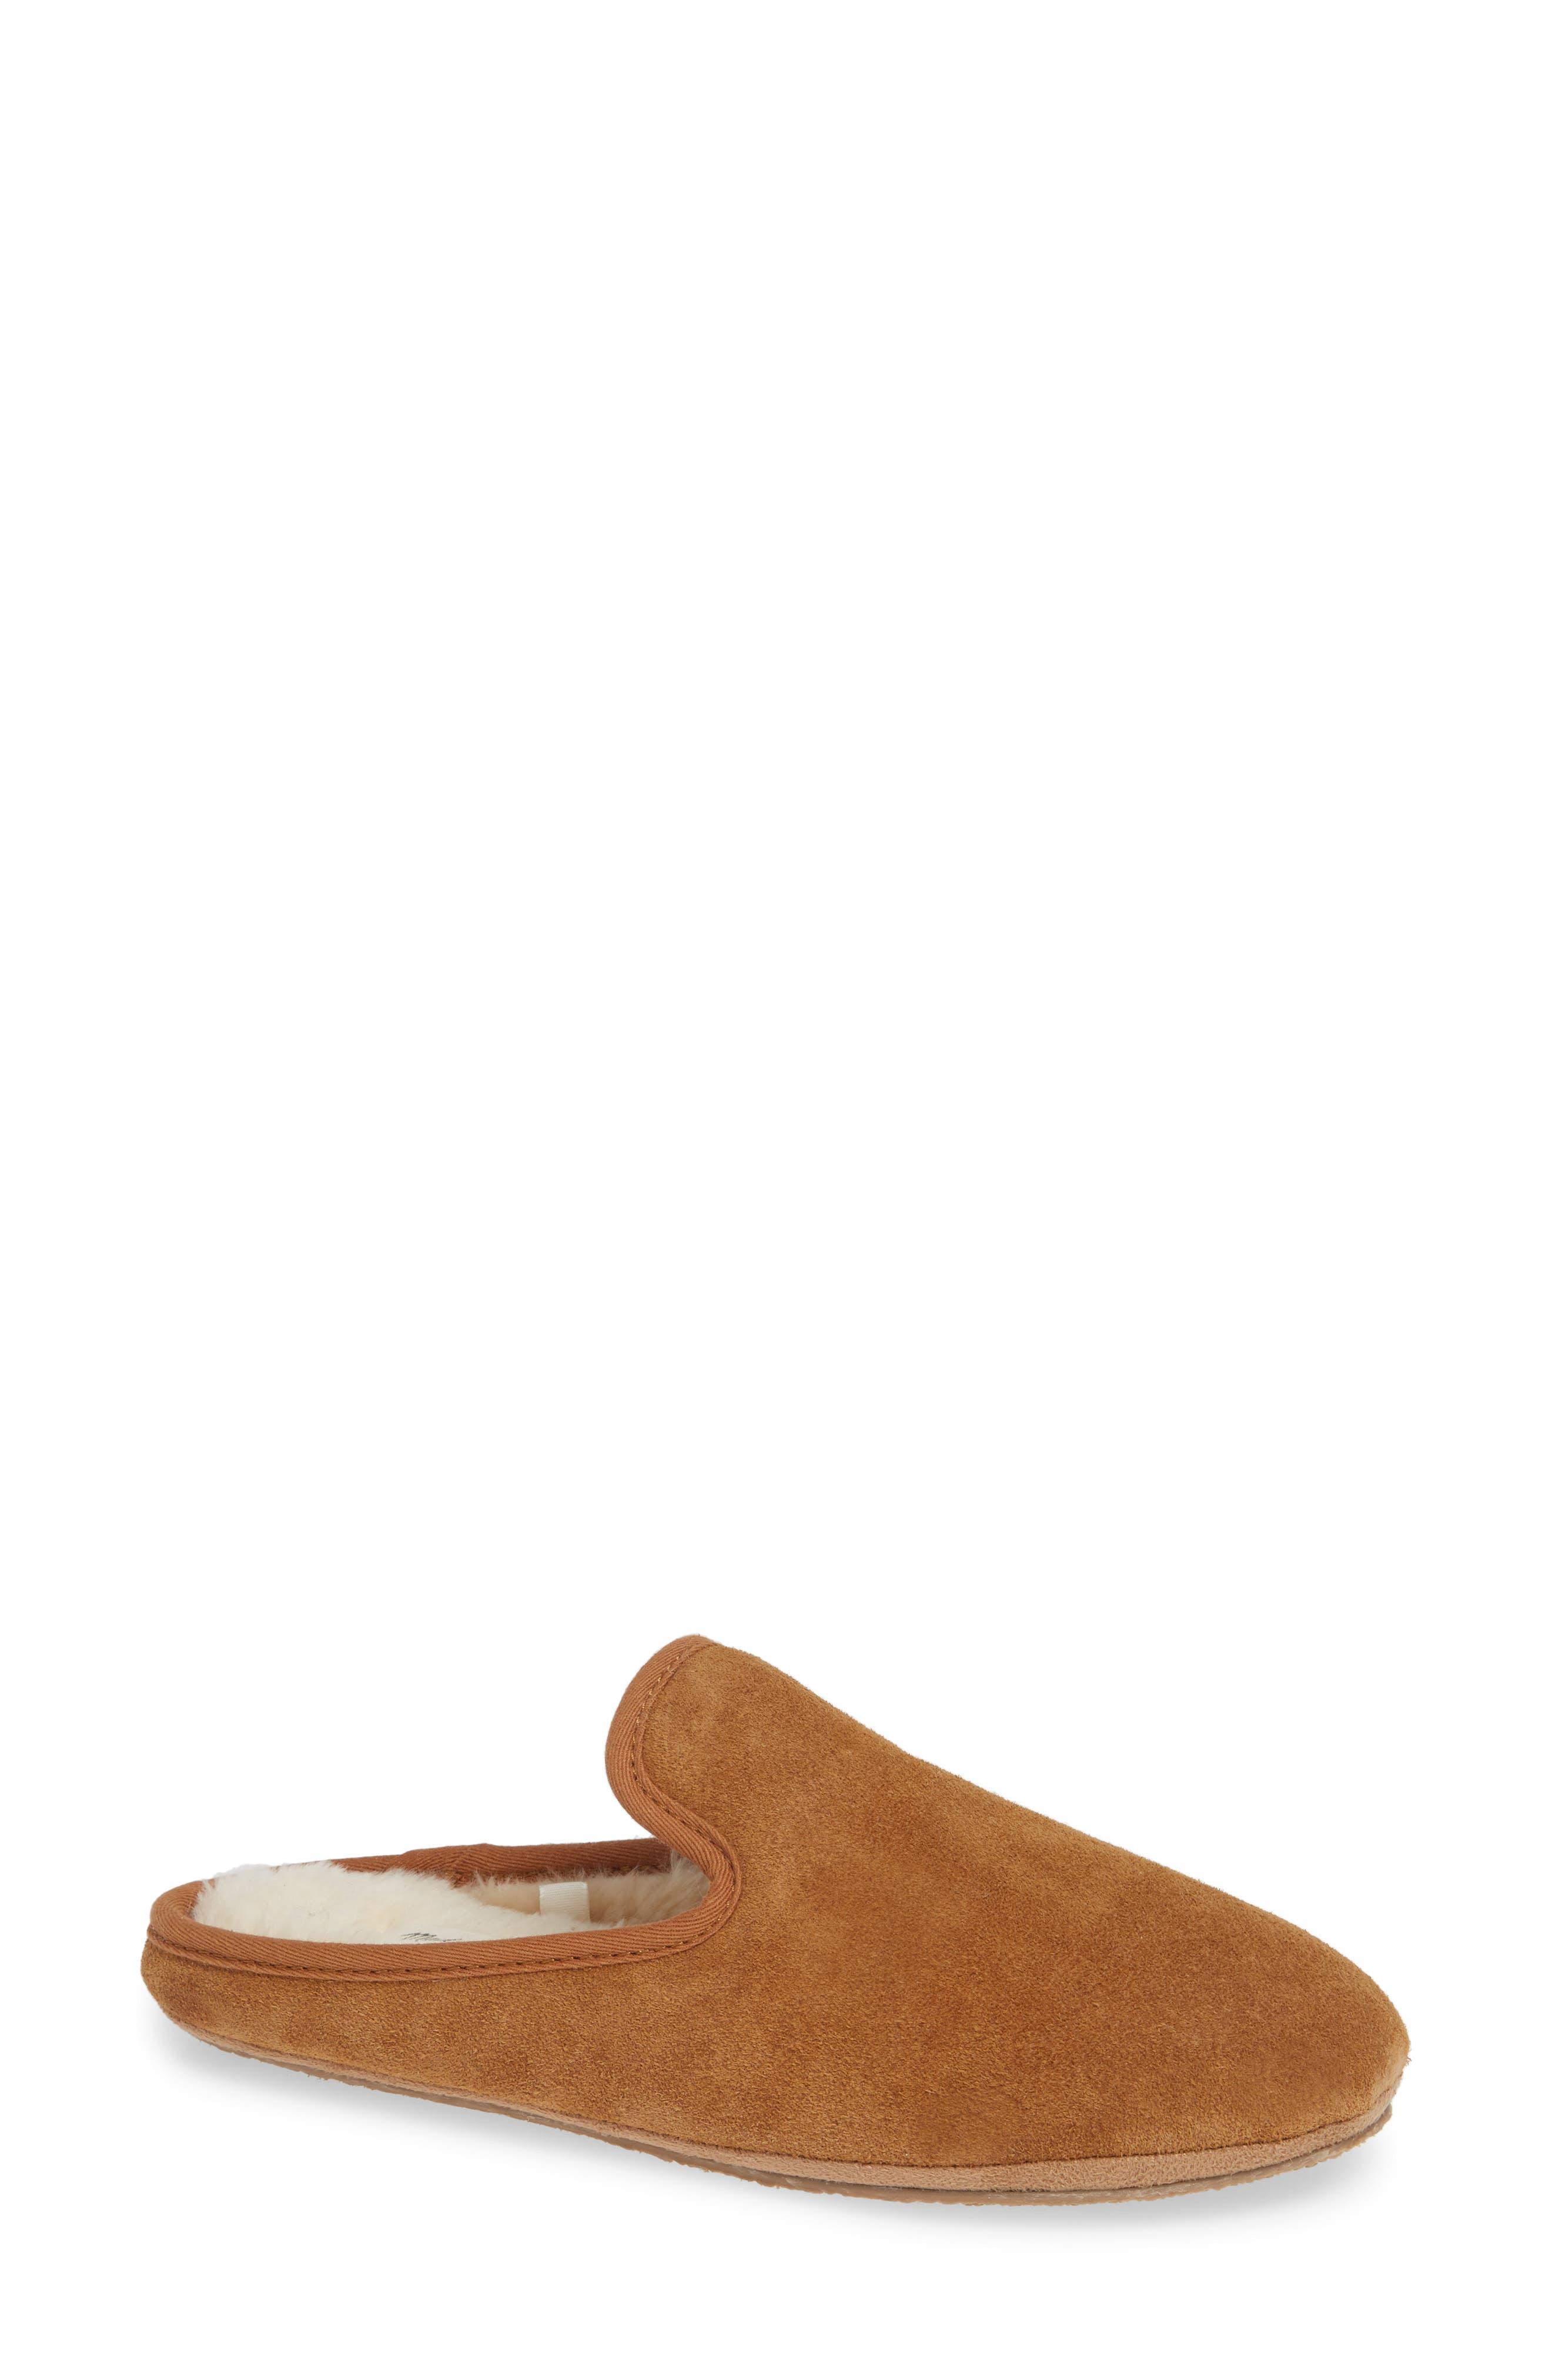 The Loafer Scuff Slipper,                         Main,                         color, TIMBER BEAM